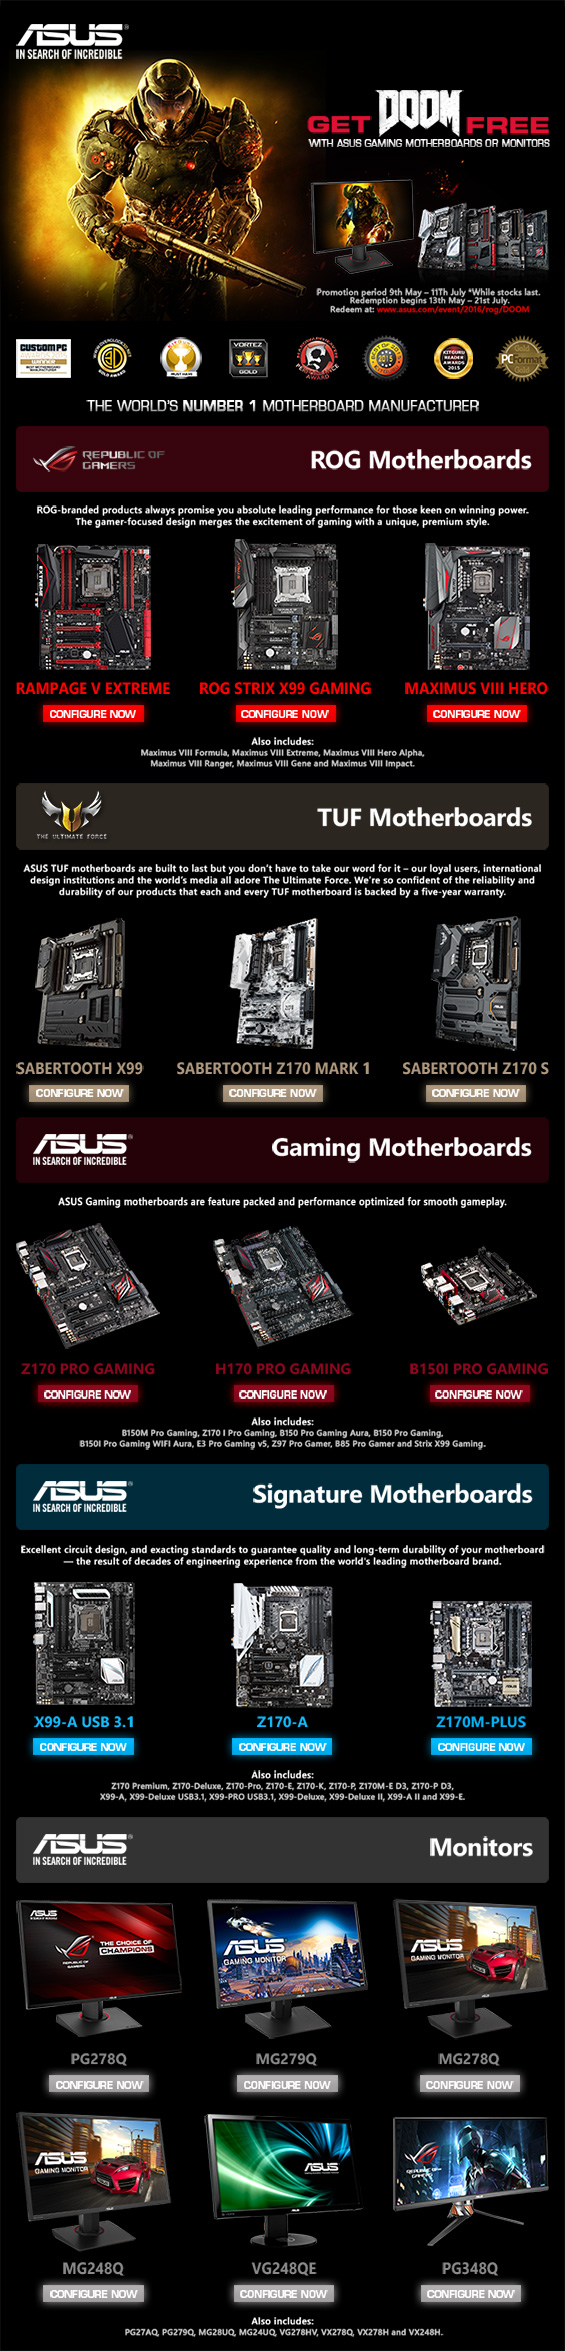 The Asus Doom PC Promotion